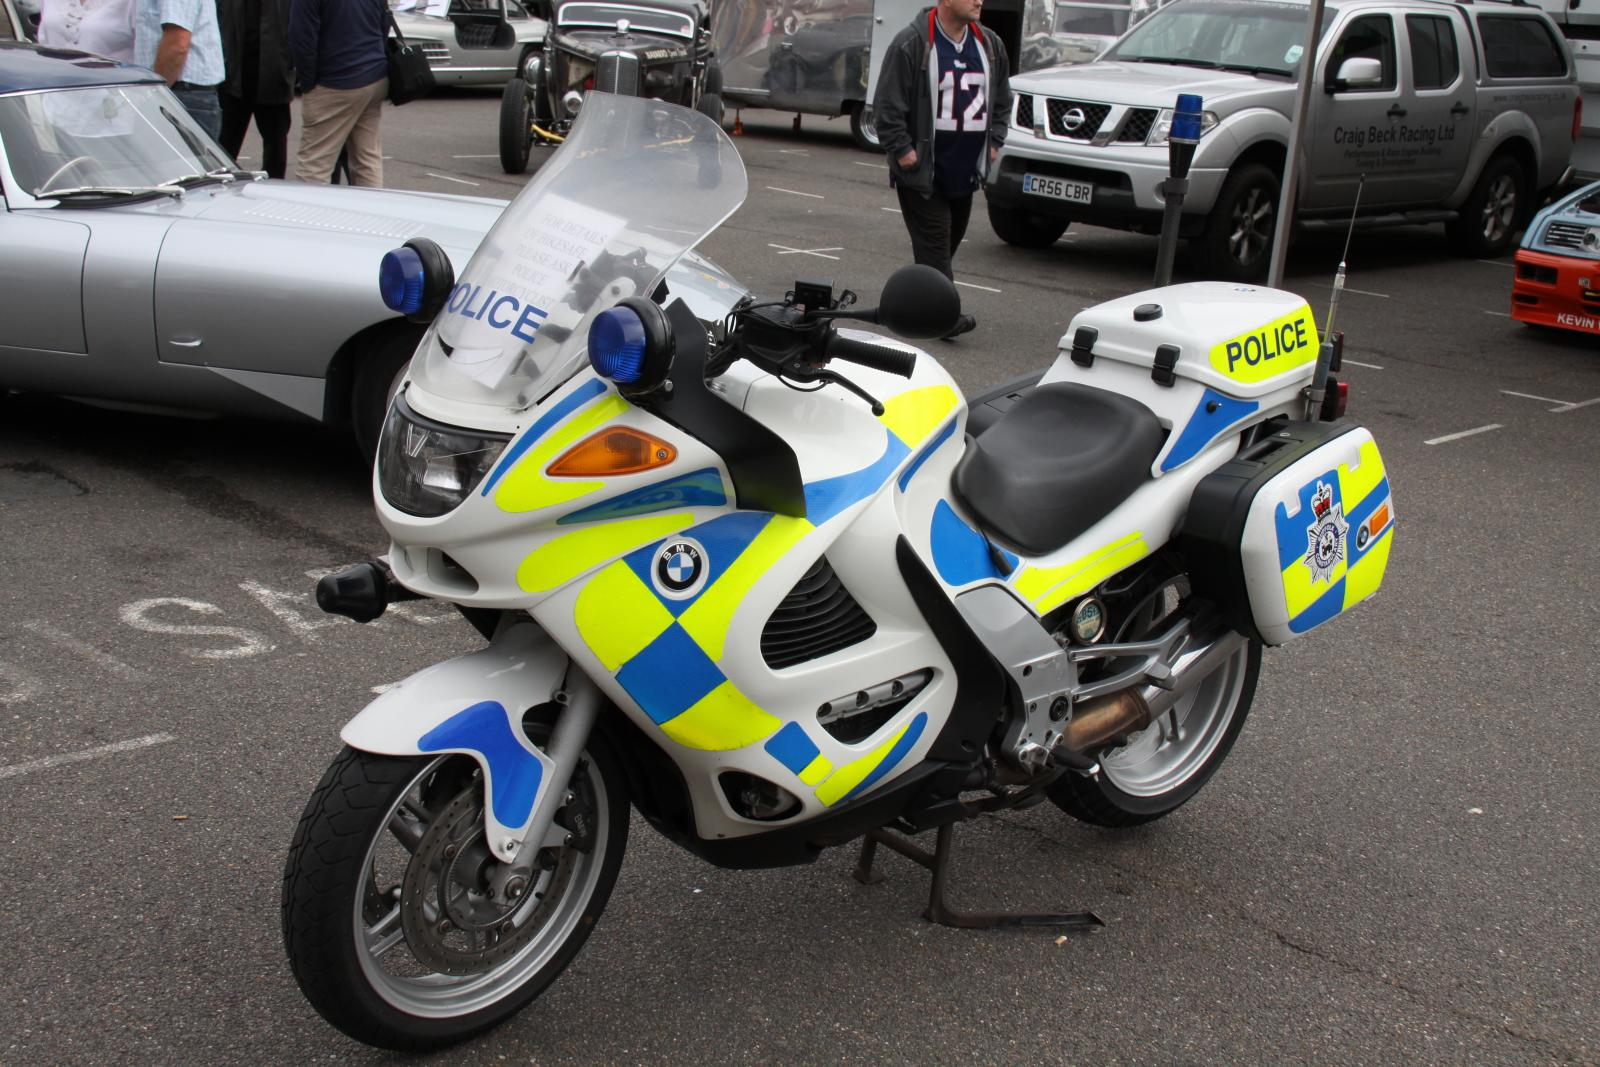 hight resolution of file bmw k1200rs police motorcycle bury st edmunds 17 07 11 jpg